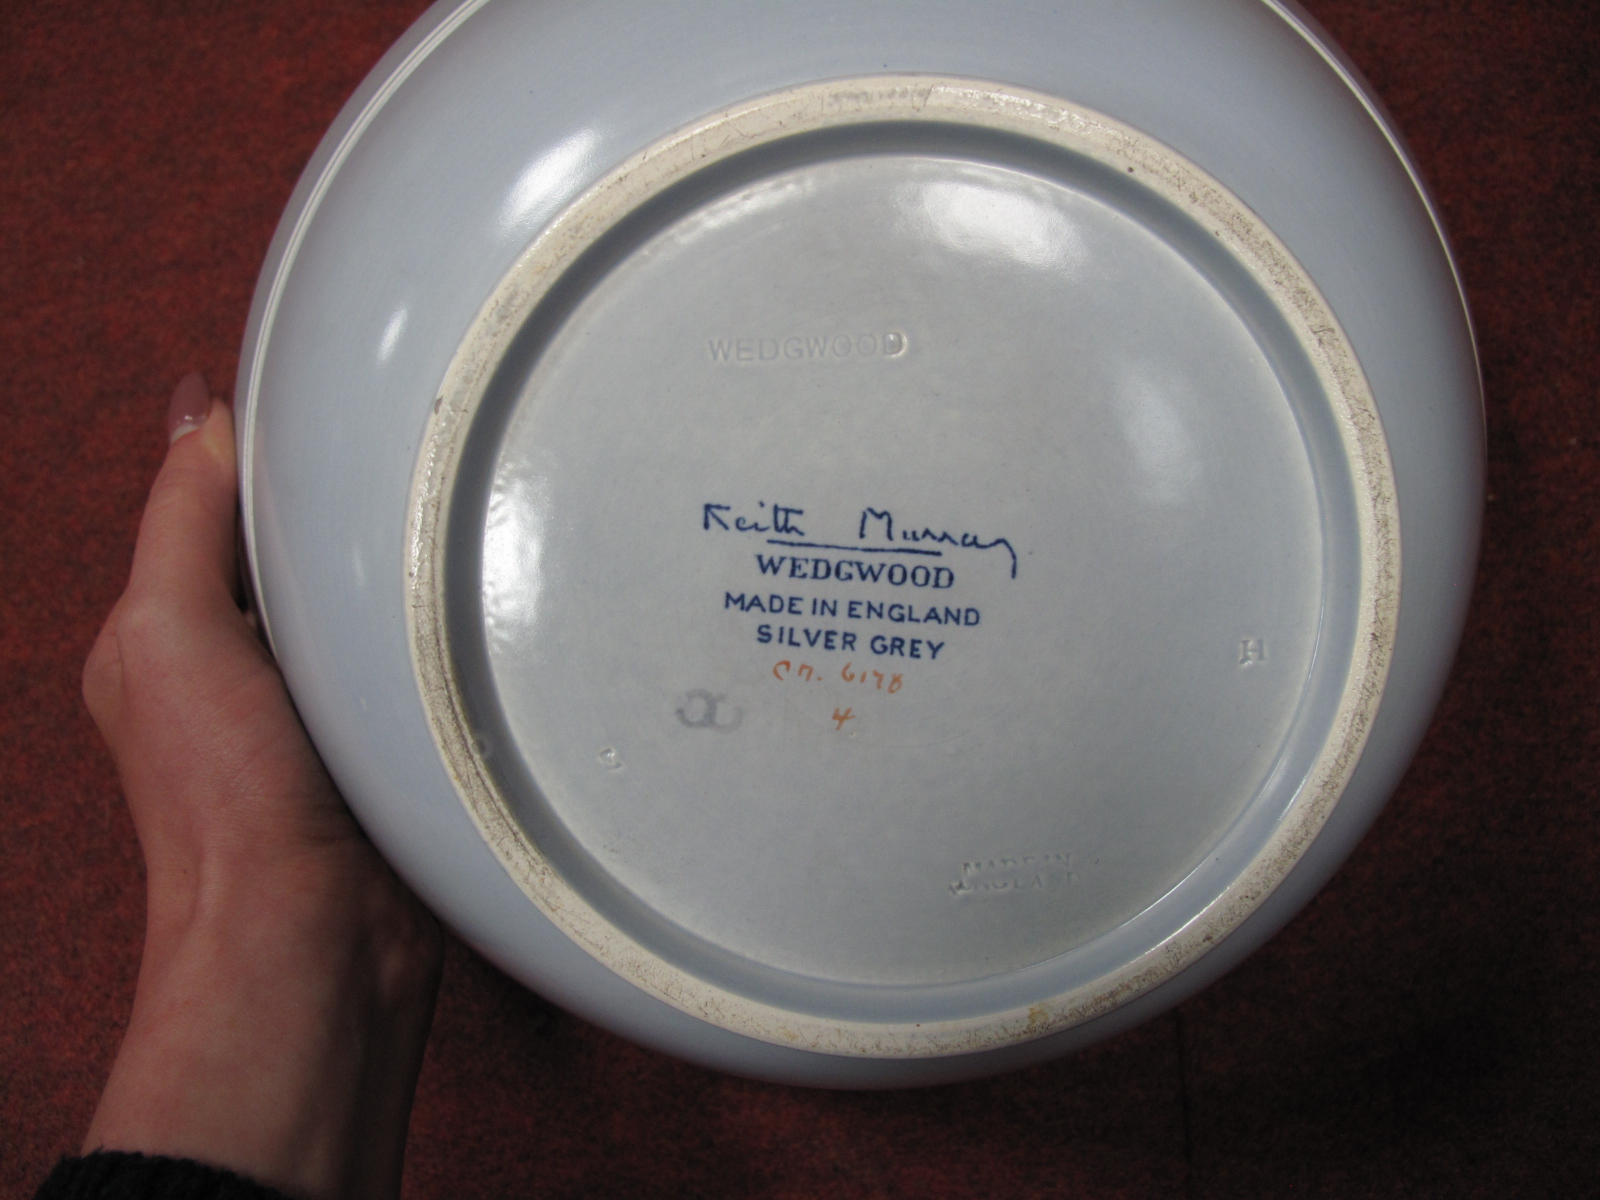 Lot 1019 - A Wedgwood Keith Murray 'Silver Grey' Pottery Bowl, with silvery bands 0.3 and 0.7cm to upper